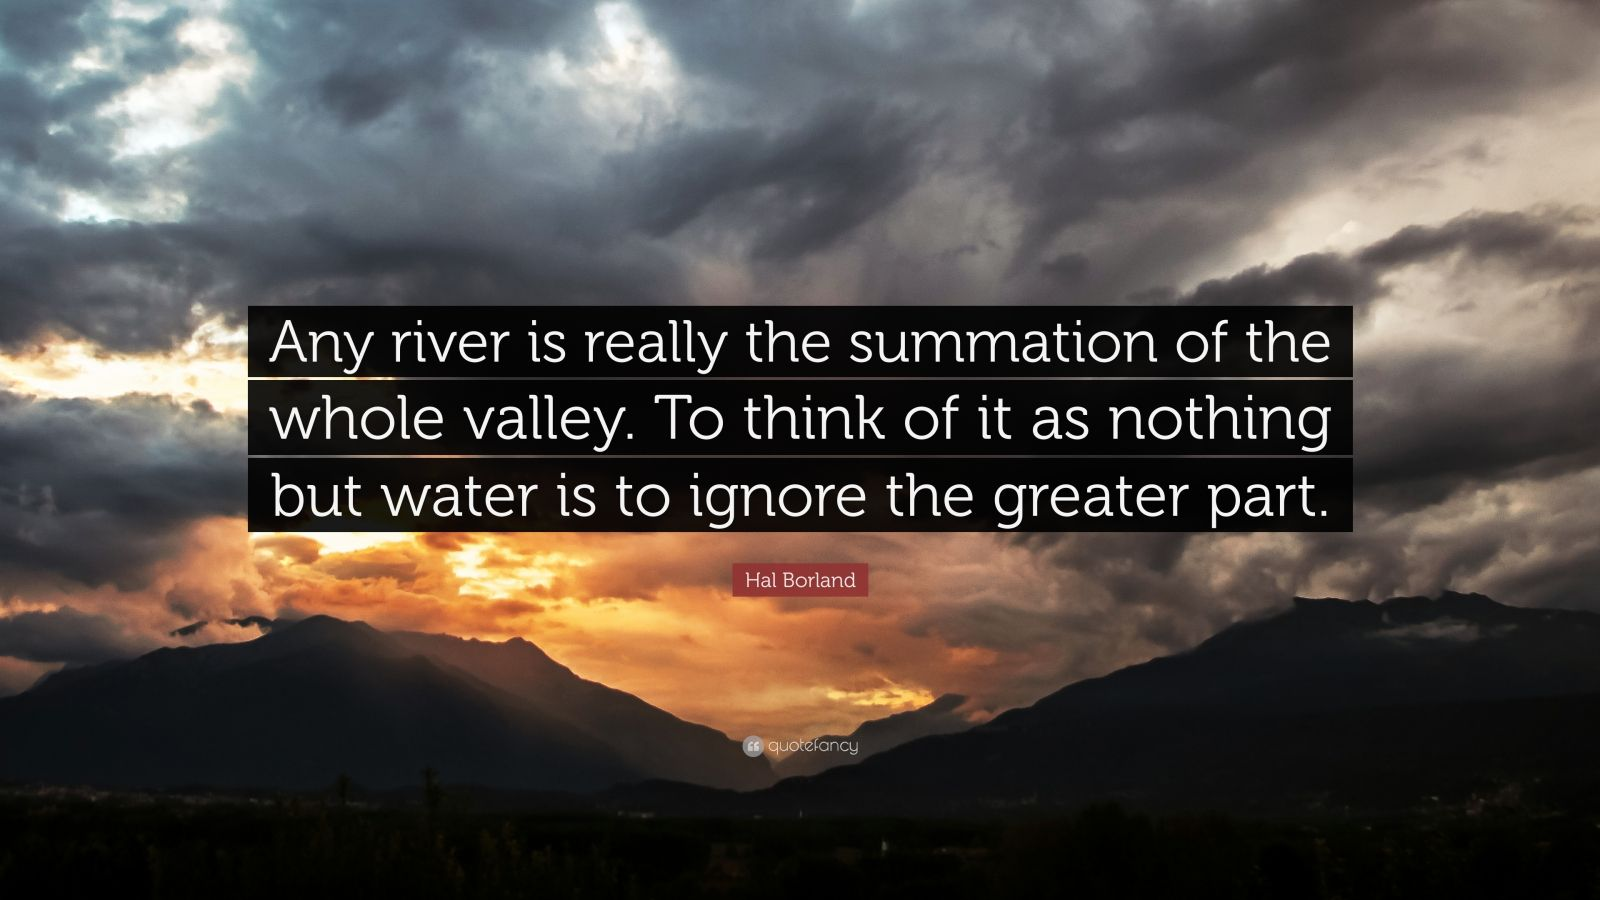 """Hal Borland Quote: """"Any river is really the summation of the whole valley. To think of it as nothing but water is to ignore the greater part."""""""